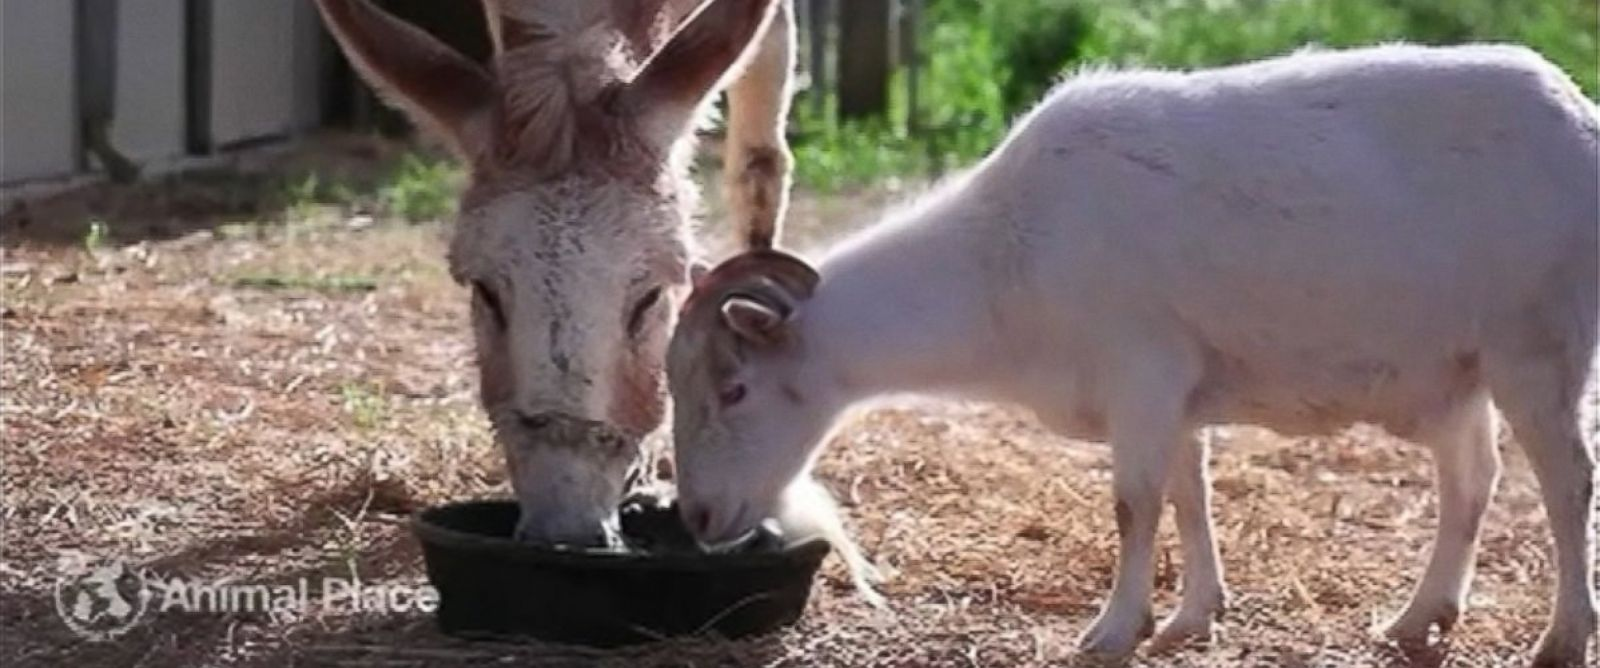 PHOTO: Mr. G the goat is reunited with Jellybean the burro after being separated for six days.